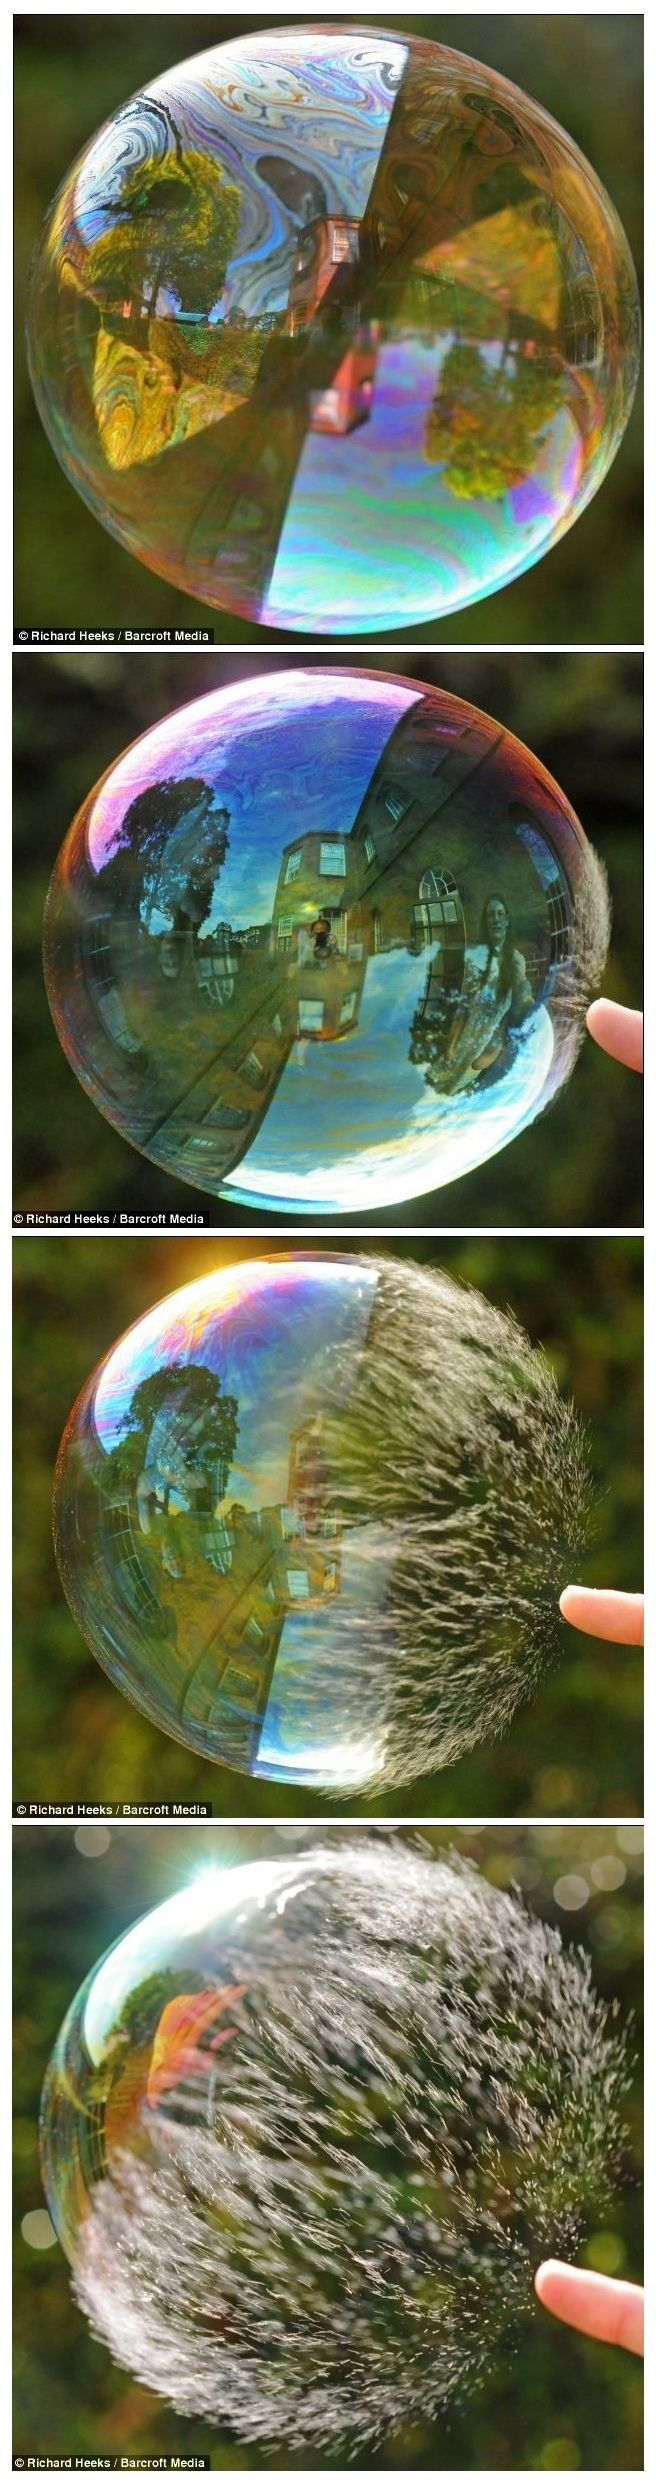 bubble popping sequence: http://www.dailymail.co.uk/sciencetech/article-1199149/Super-slow-motion-pictures-soap-bubble-bursting-stunning-detail.html